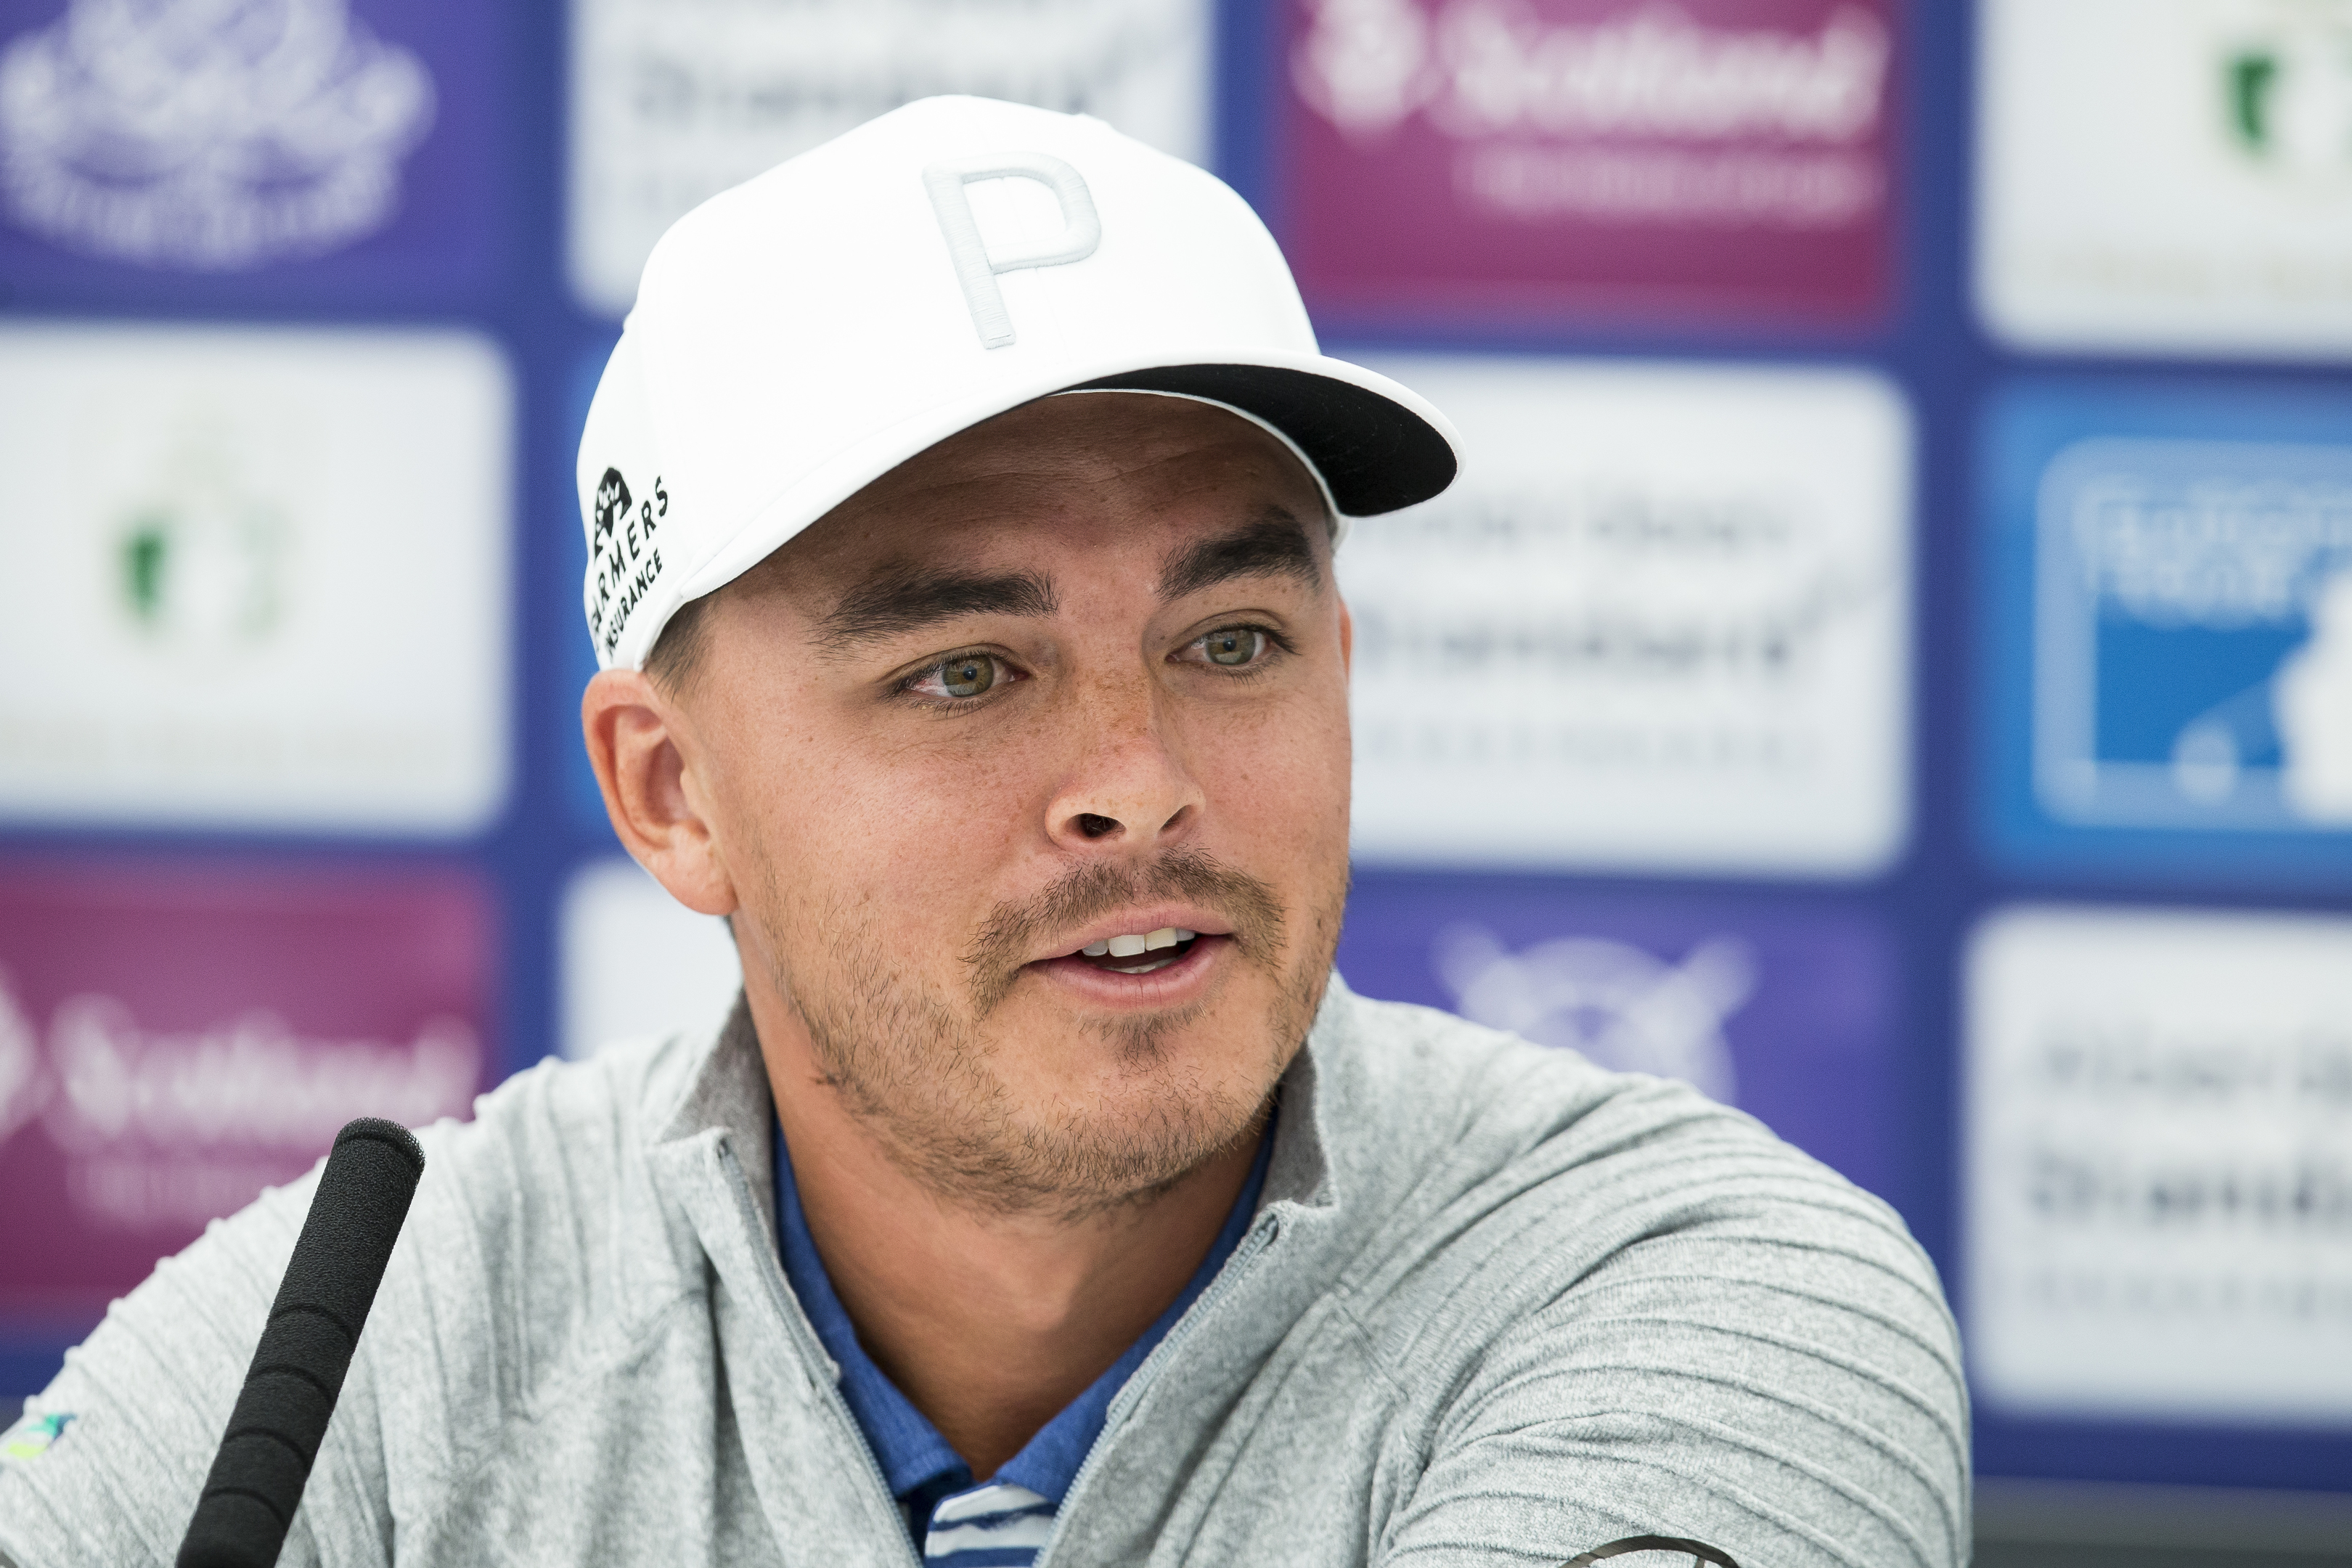 Rickie Fowler tuned up for Carnoustie playing a golf simulator.